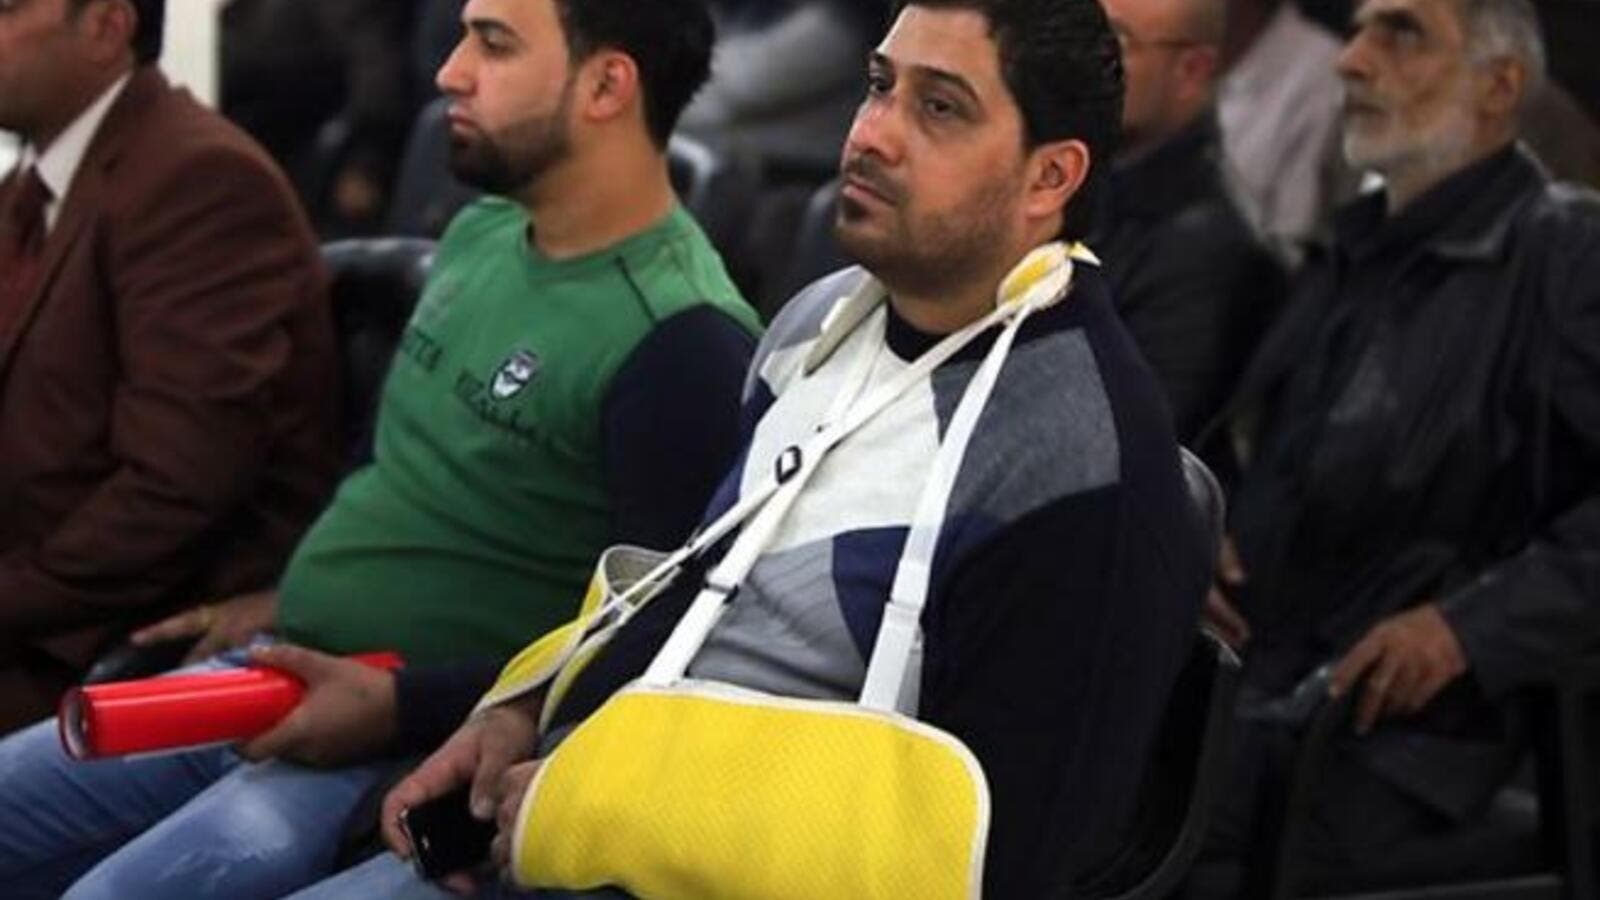 An Iraqi cafe owner injured in an bomb attack attends a seminar for owners. [resources1]